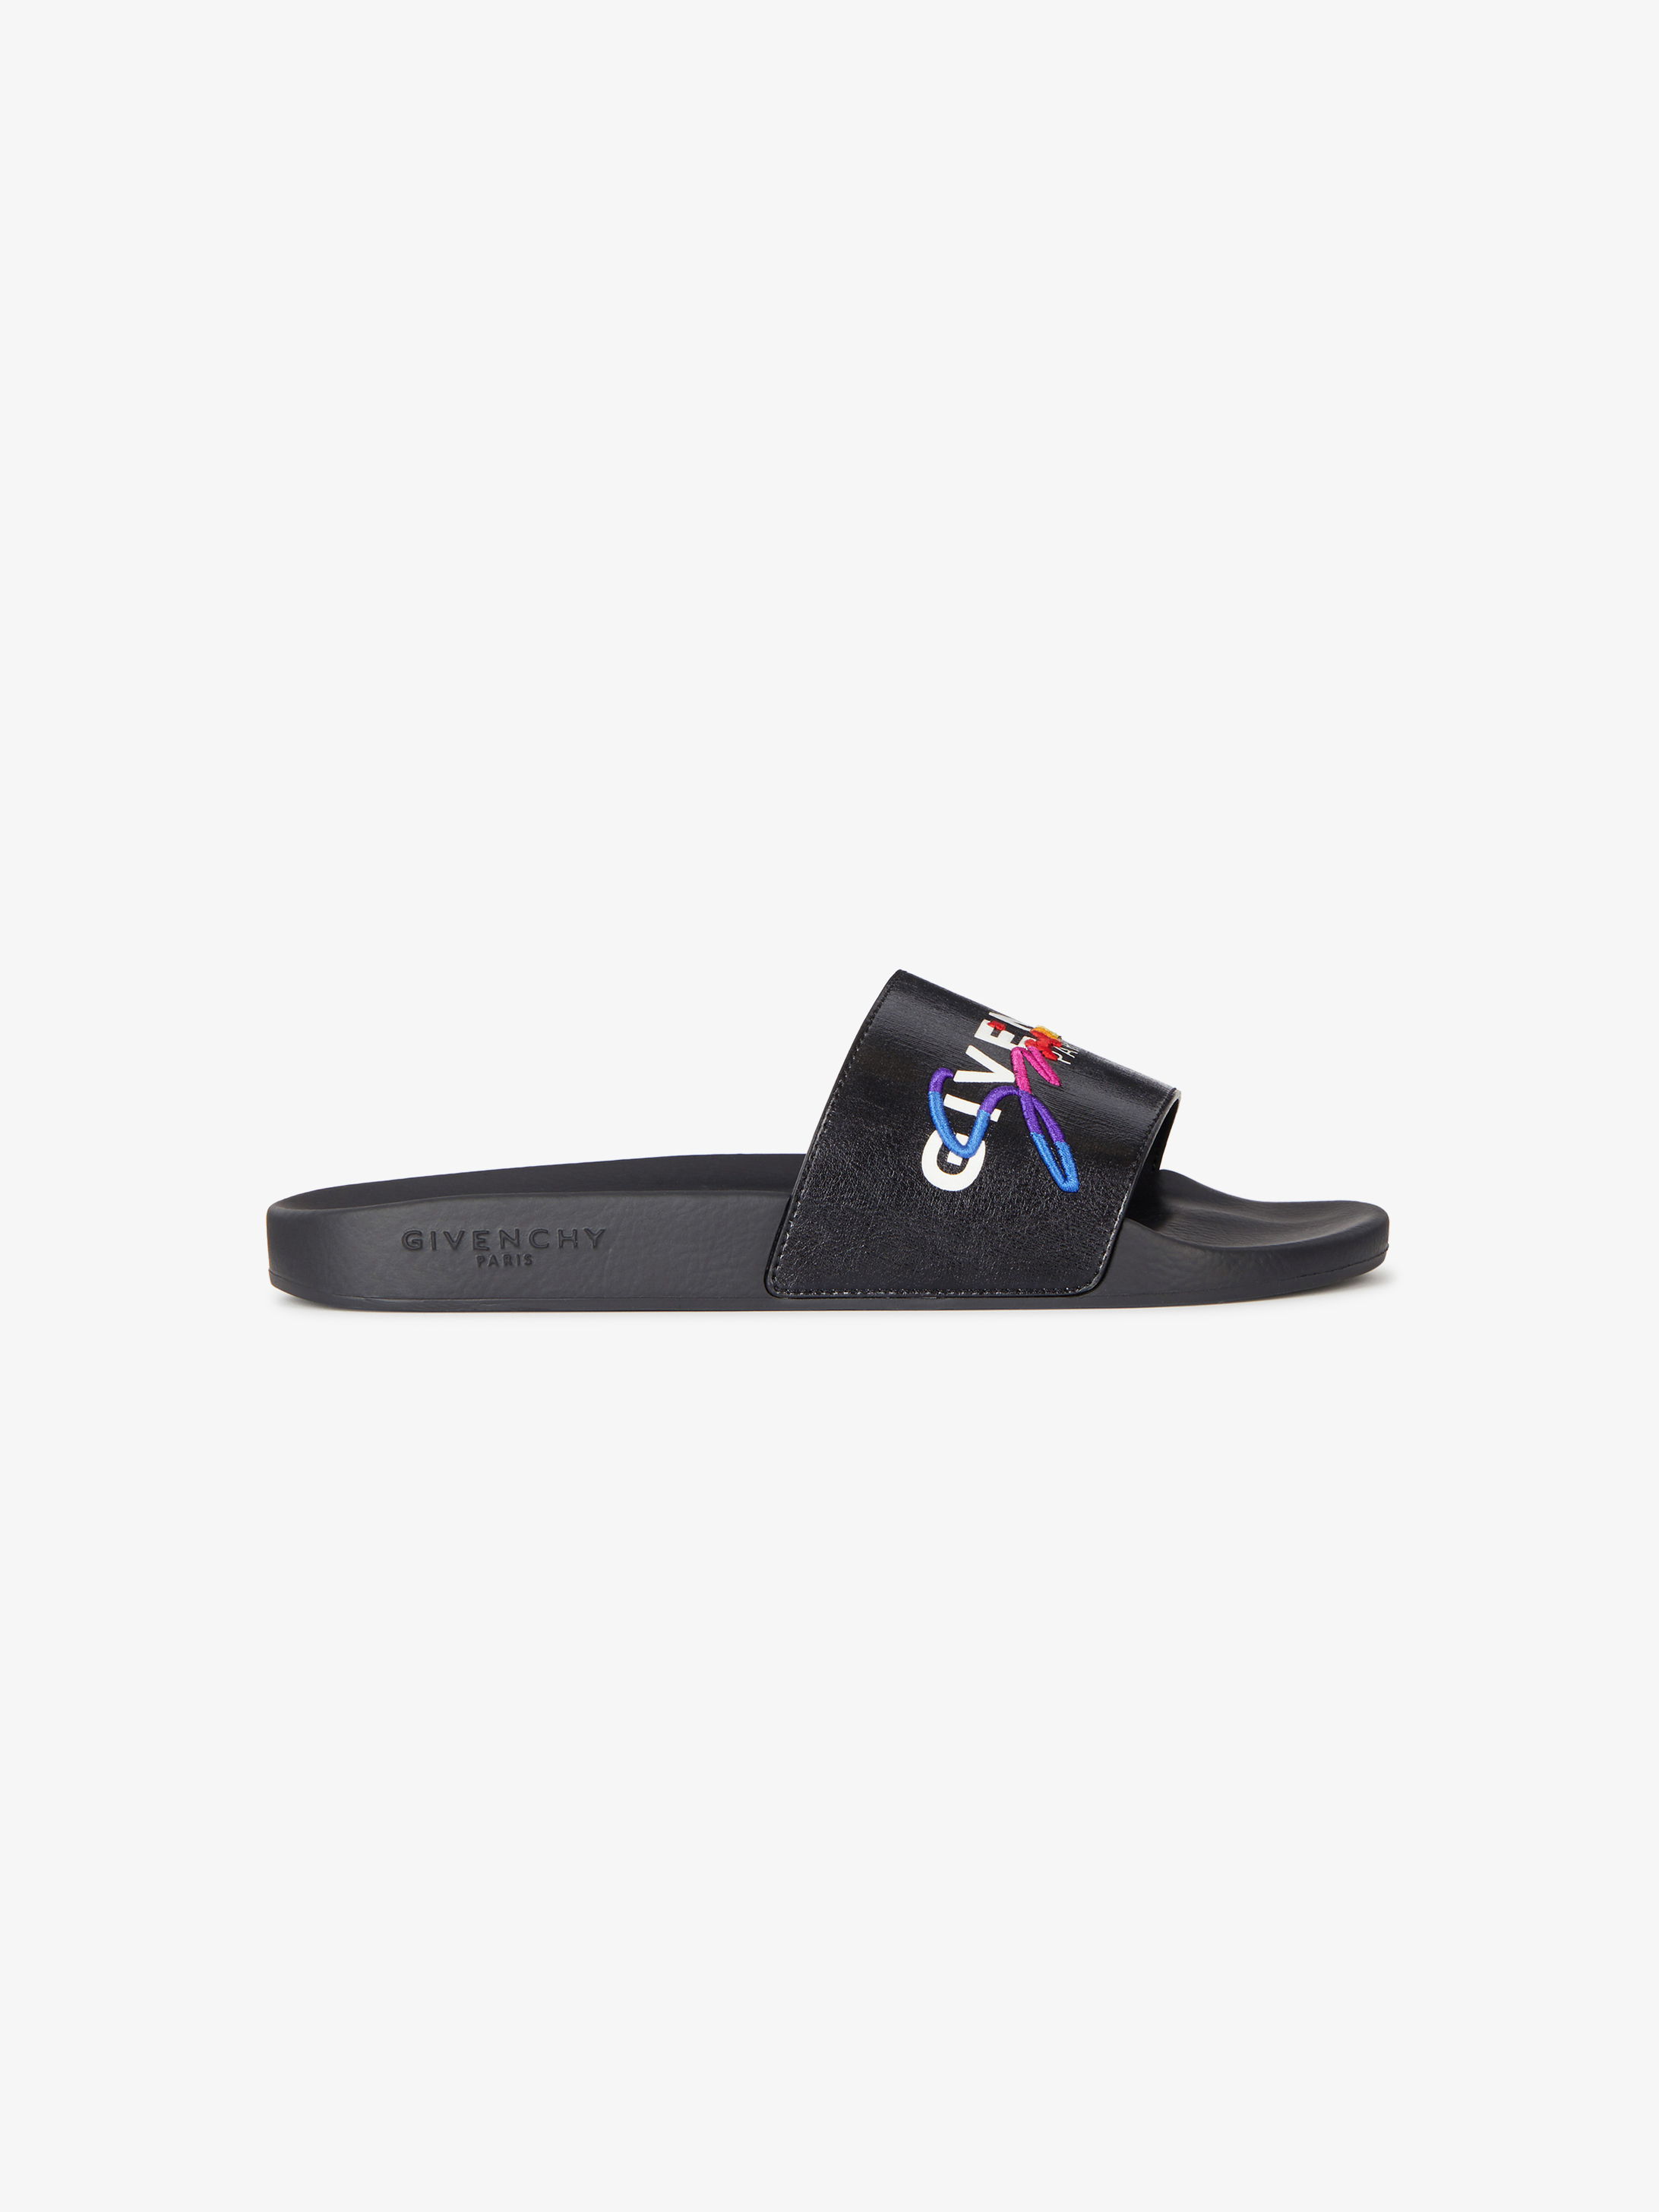 GIVENCHY signature sandals in coated canvas